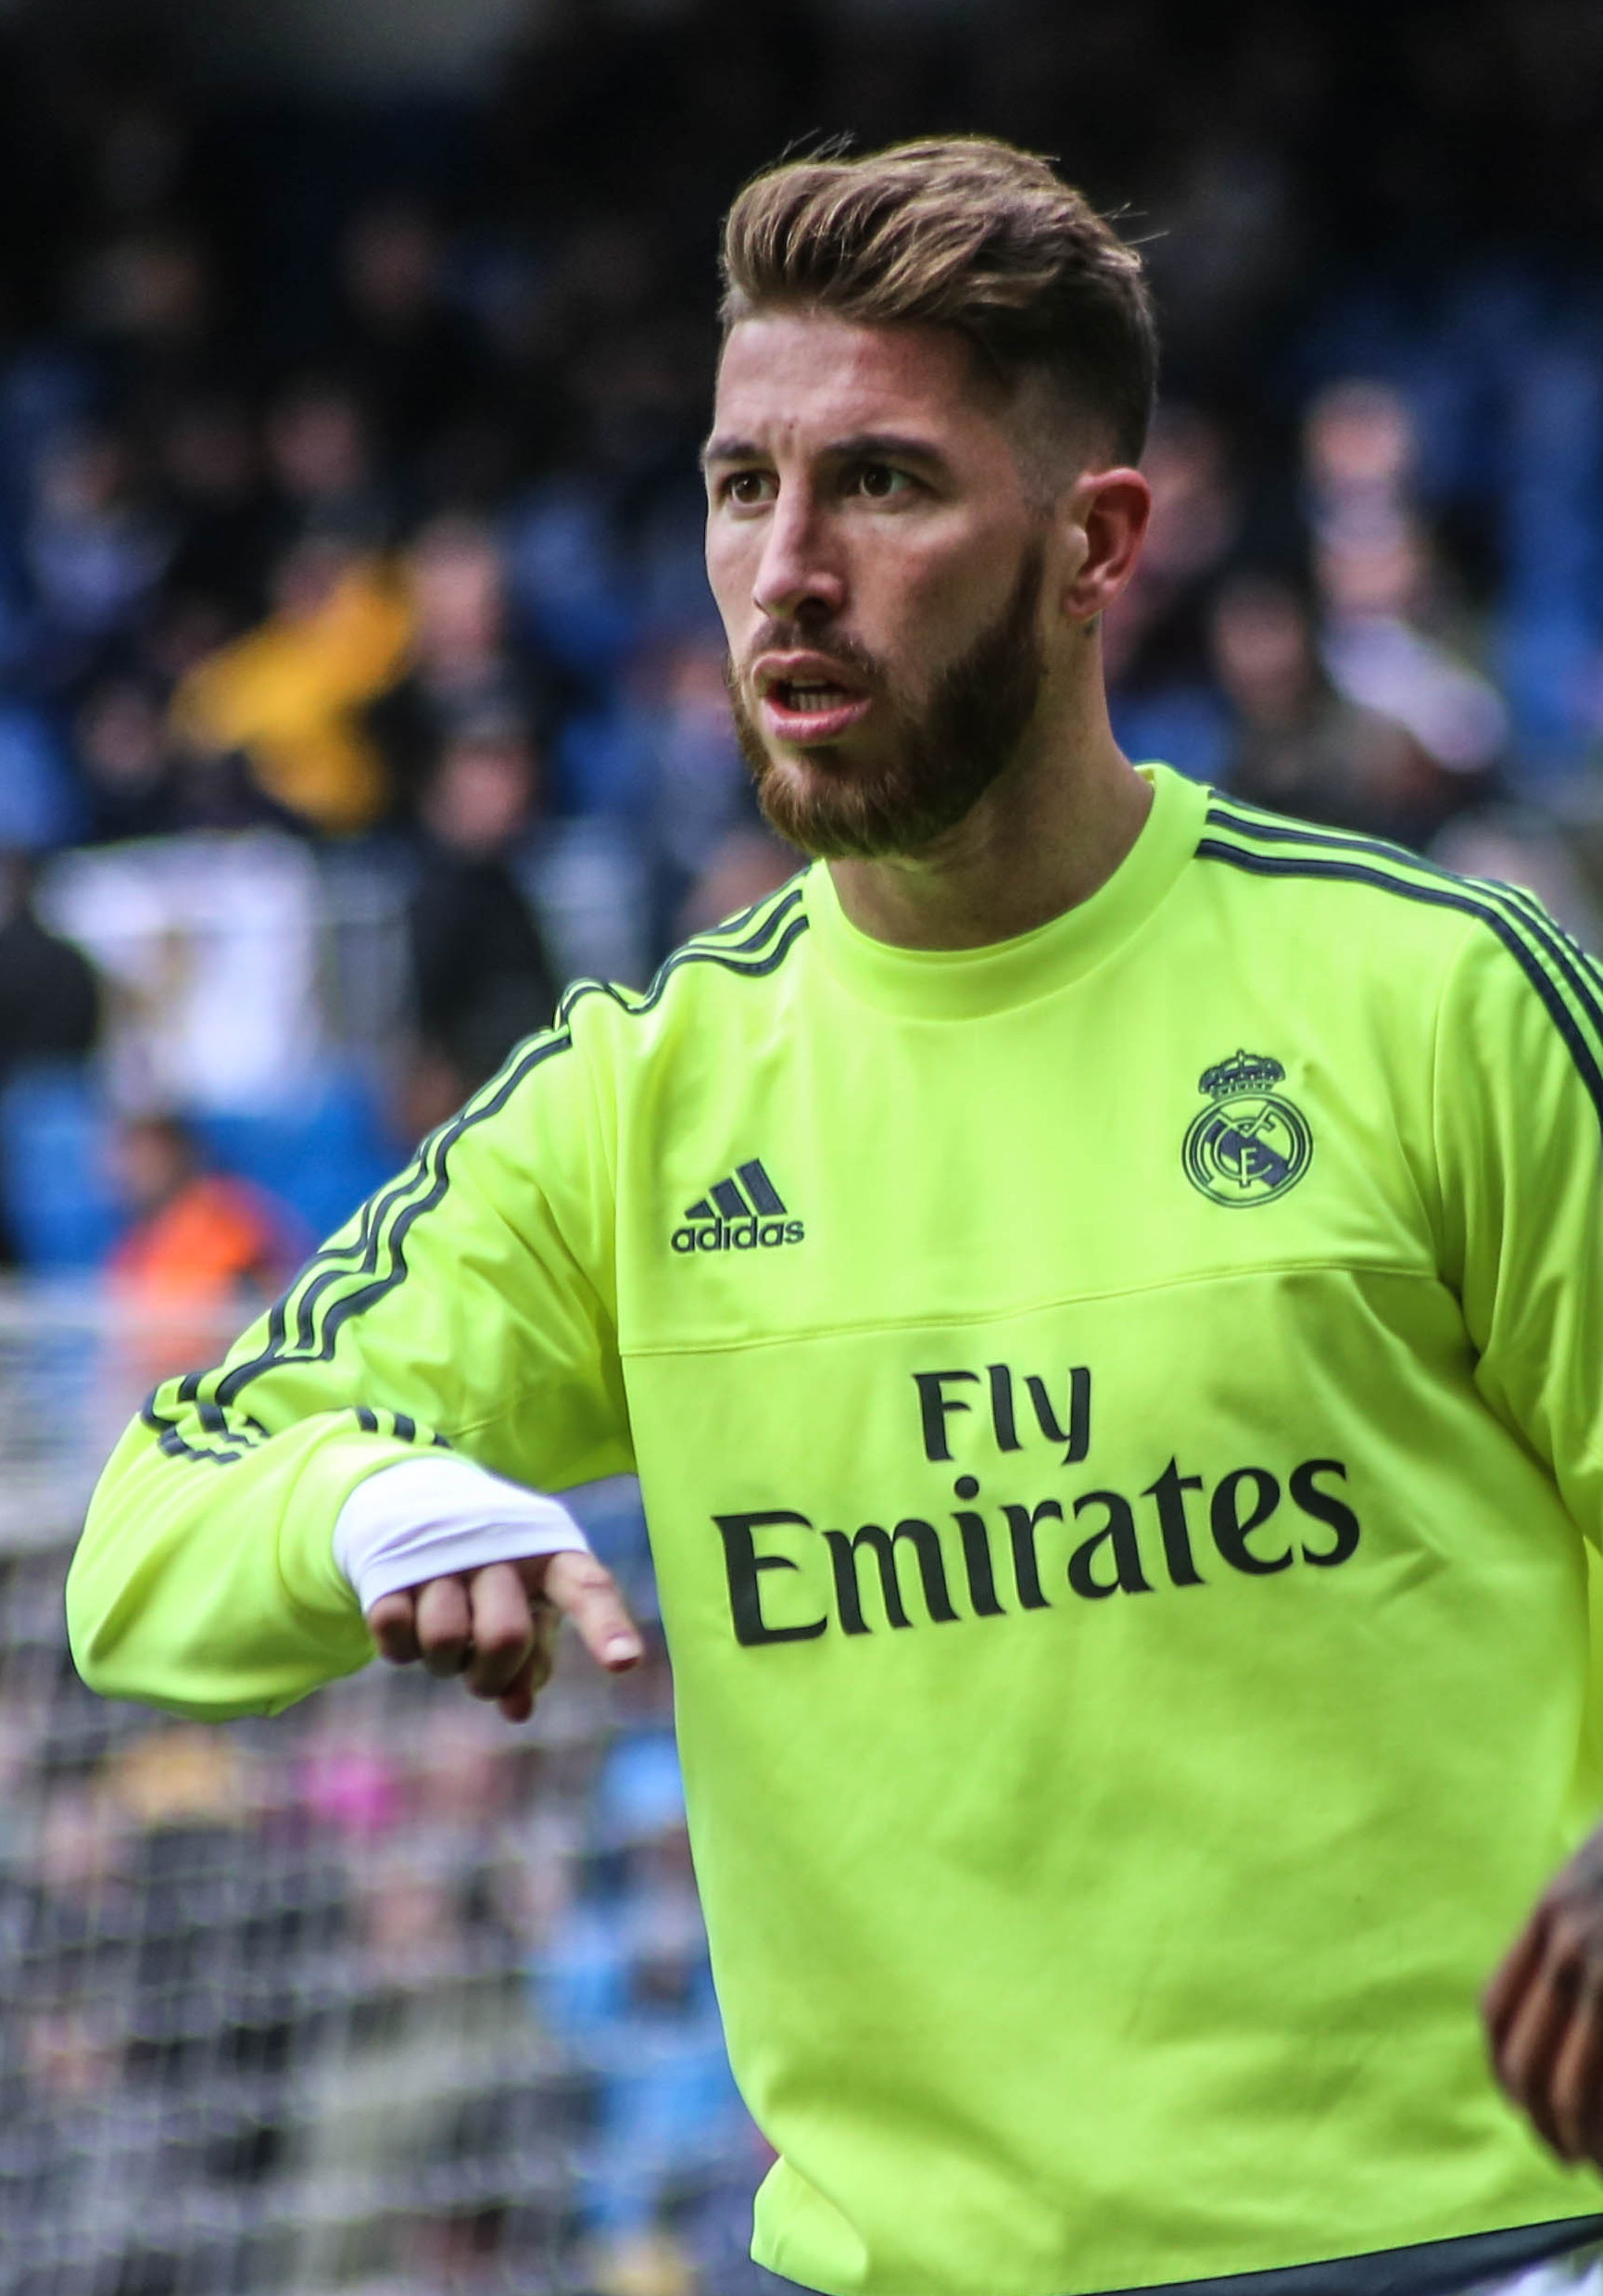 The 32-year old son of father José Maria Ramos and mother Paqui Ramos Sergio Ramos in 2018 photo. Sergio Ramos earned a 25 million dollar salary - leaving the net worth at 60 million in 2018